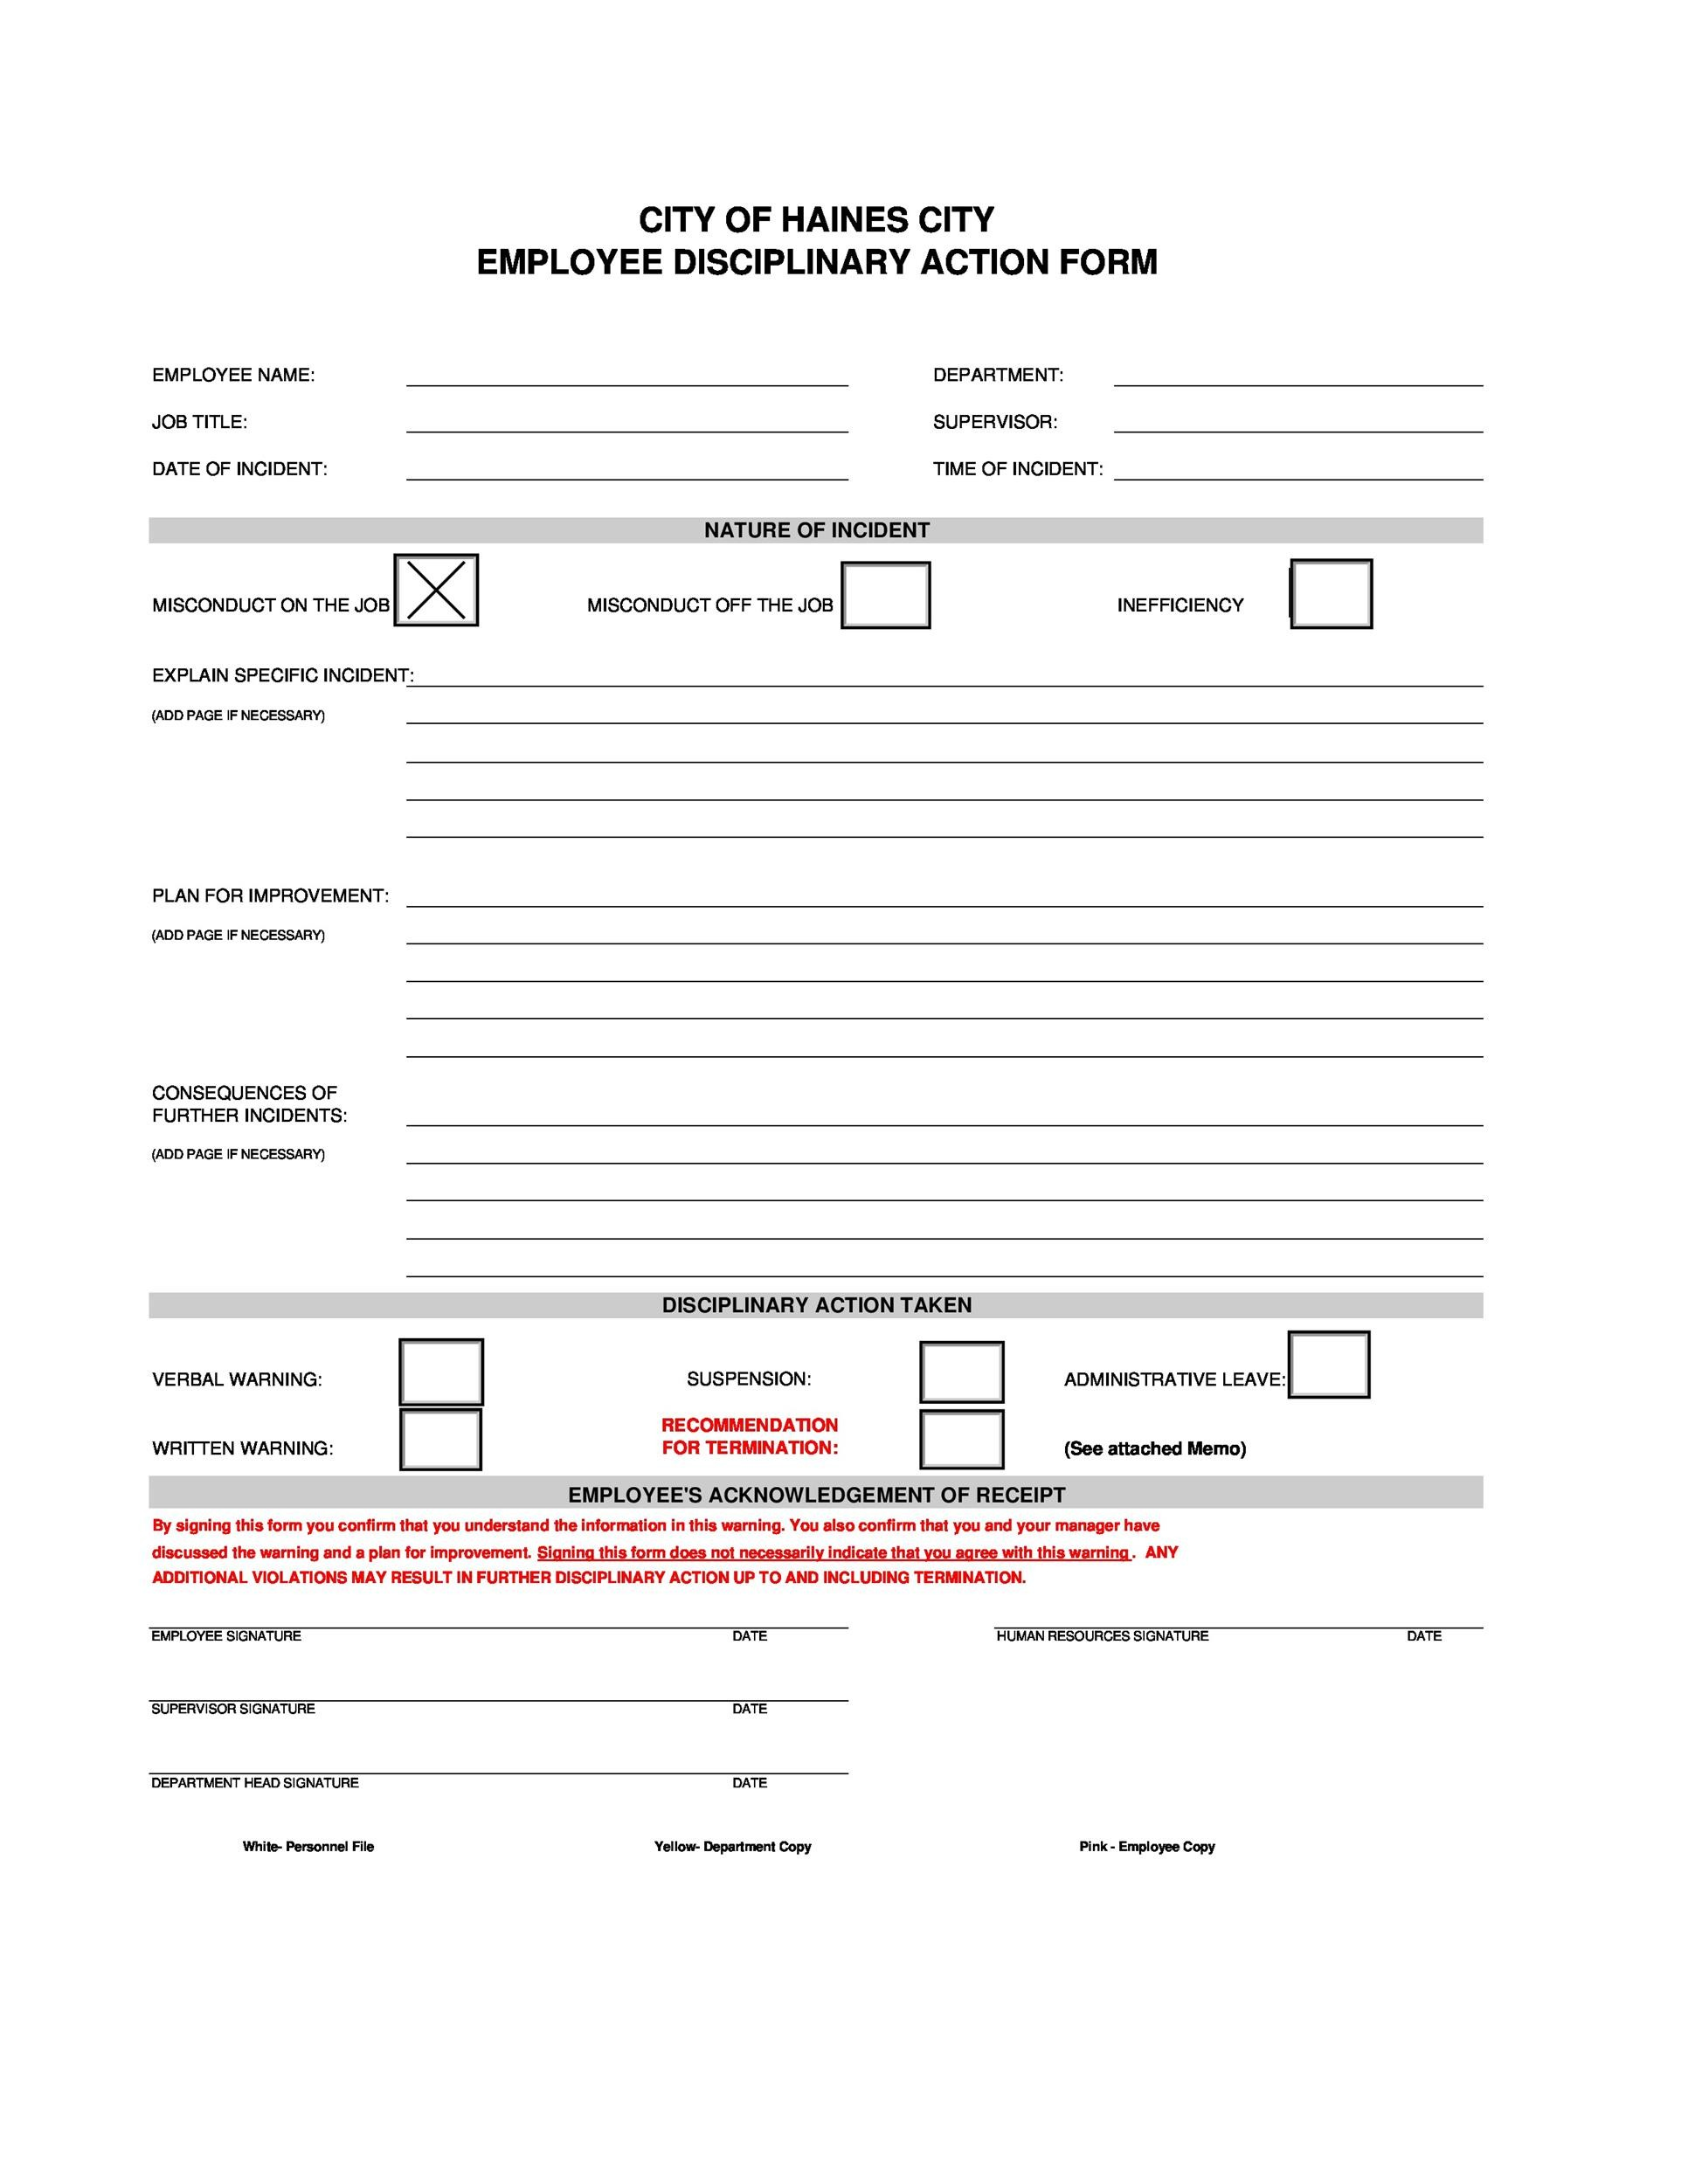 Free Employee Disciplinary Action (Discipline) Form U2013 U2026 To Fill Out This  Form U2013 In Top RIGHT Click On FILL AND SIGN, Fill And Sign Tools